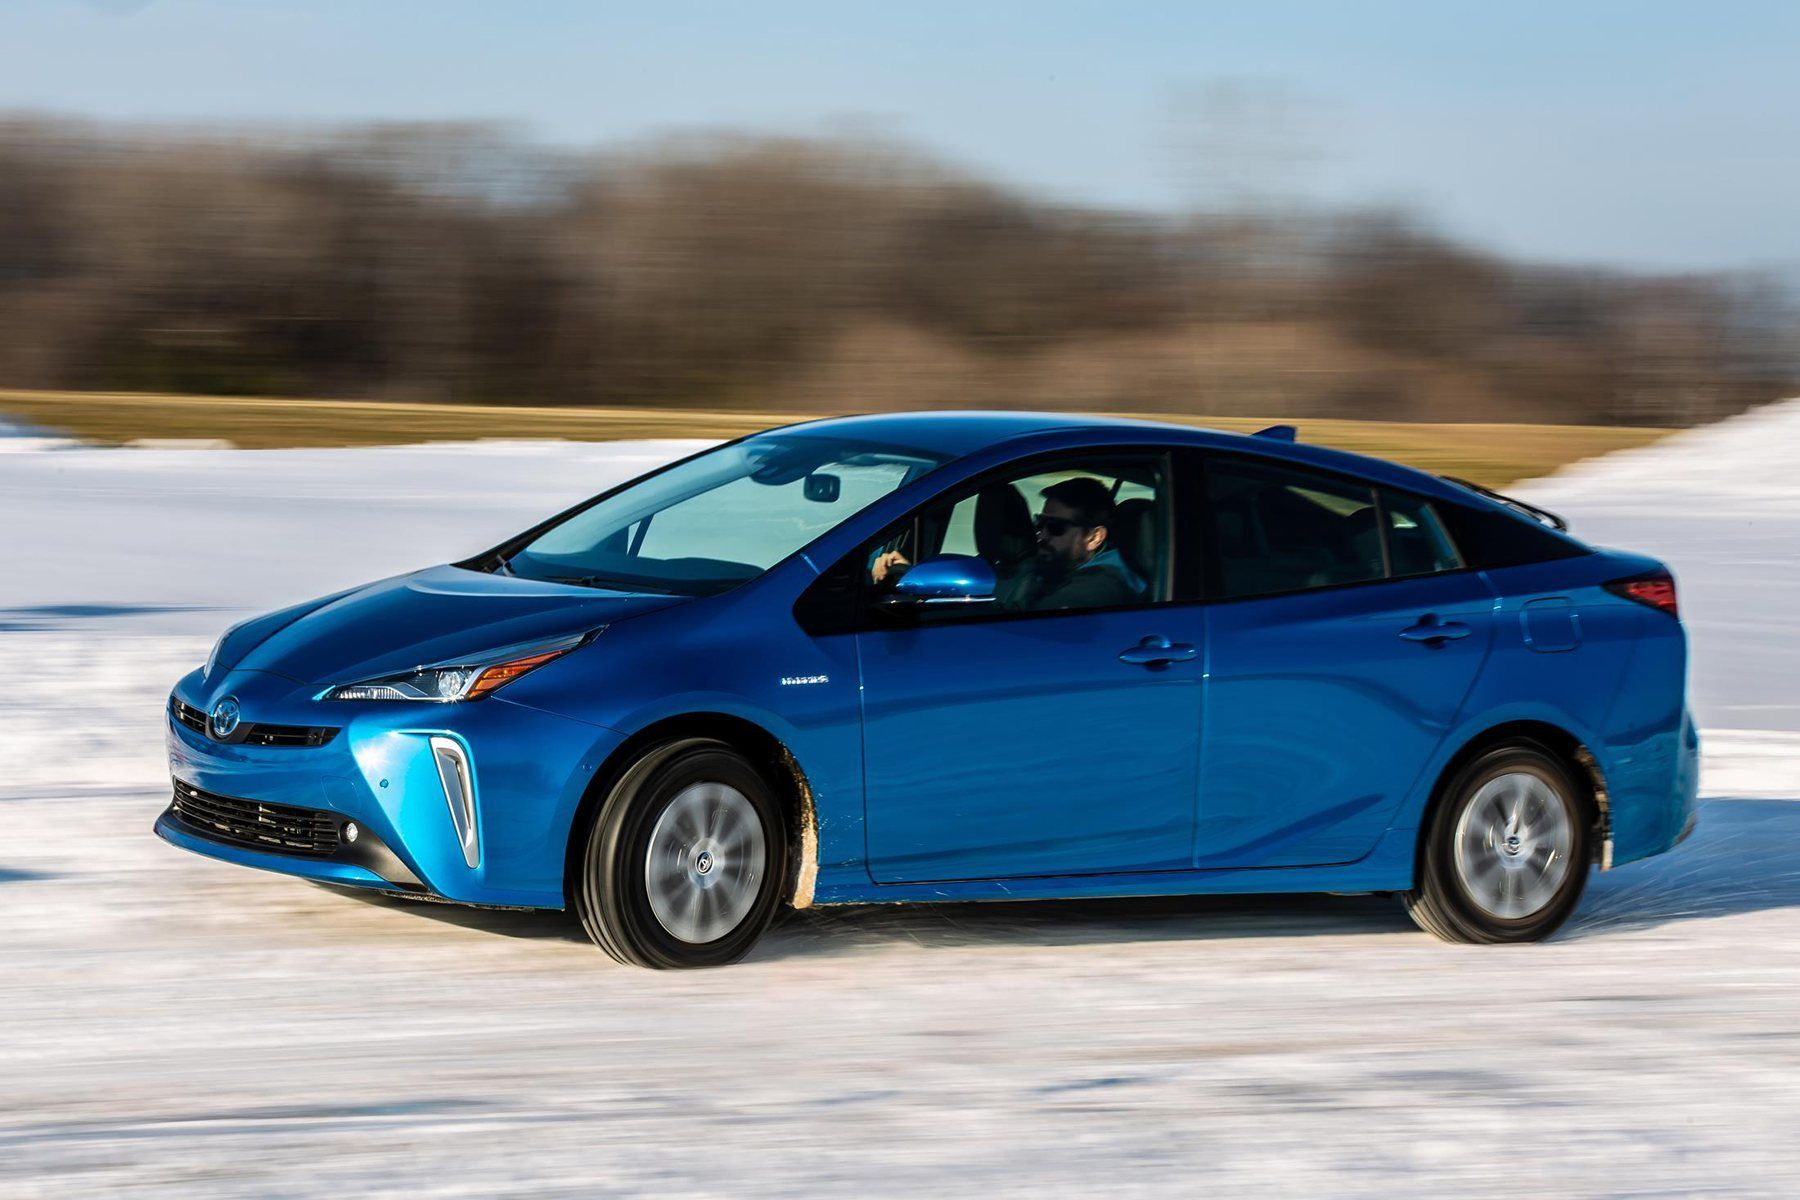 2021 Toyota Prius Pictures Price And Review In 2020 Toyota Prius